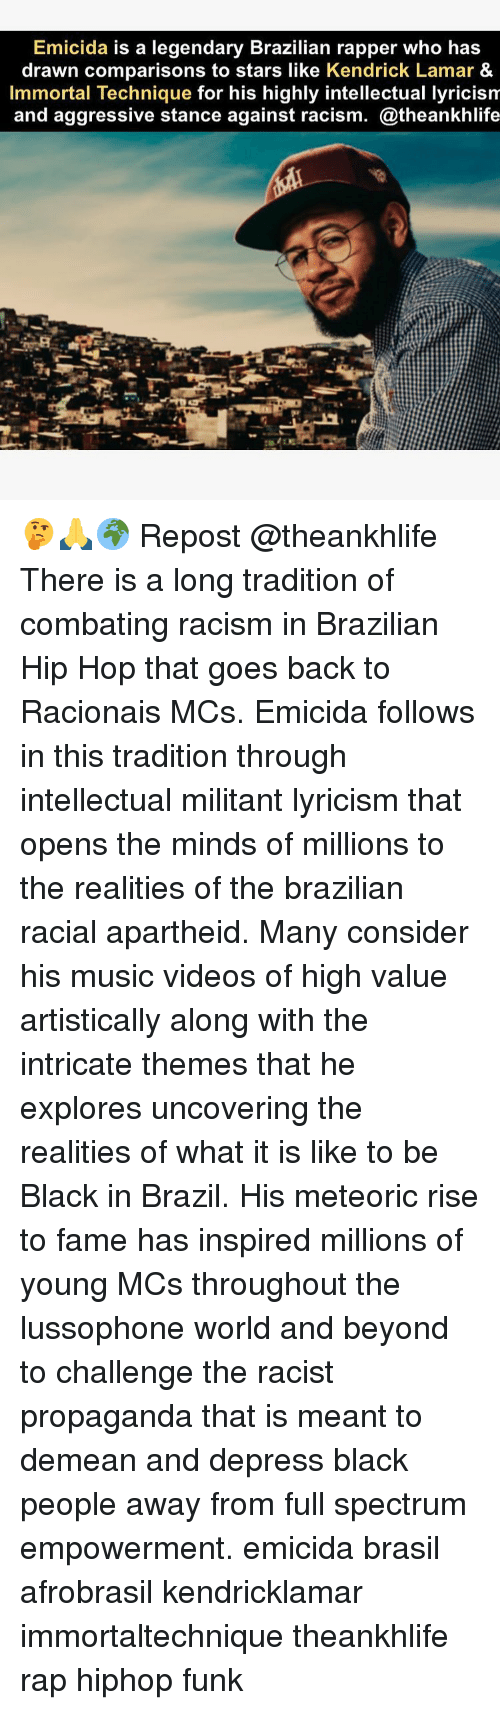 Https I Fuck All That President Shit Fam We Out Here Drinkin Tendencies Kaos Percent Vibe Putih S Emicida Is A Legendary Brazilian Rapper Who Has Drawn Comparisons 16068145